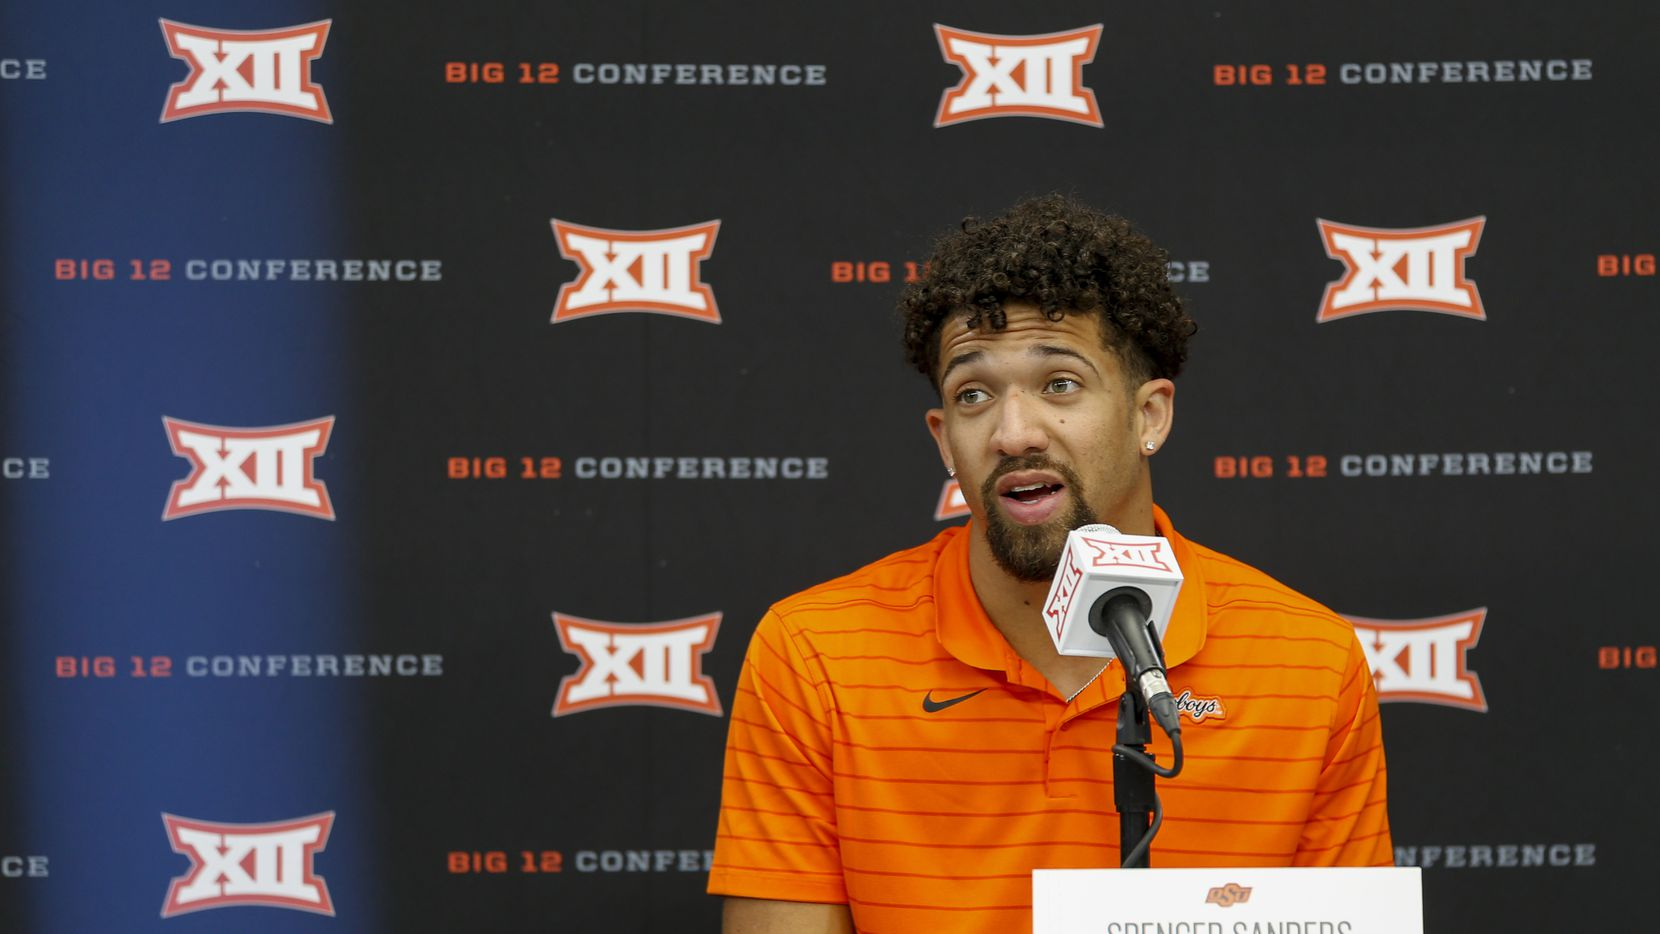 Oklahoma State quarterback Spencer Sanders speaks during a breakout session at the Big 12 Conference Media Days at AT&T Stadium on Thursday, July 15, 2021, in Arlington.